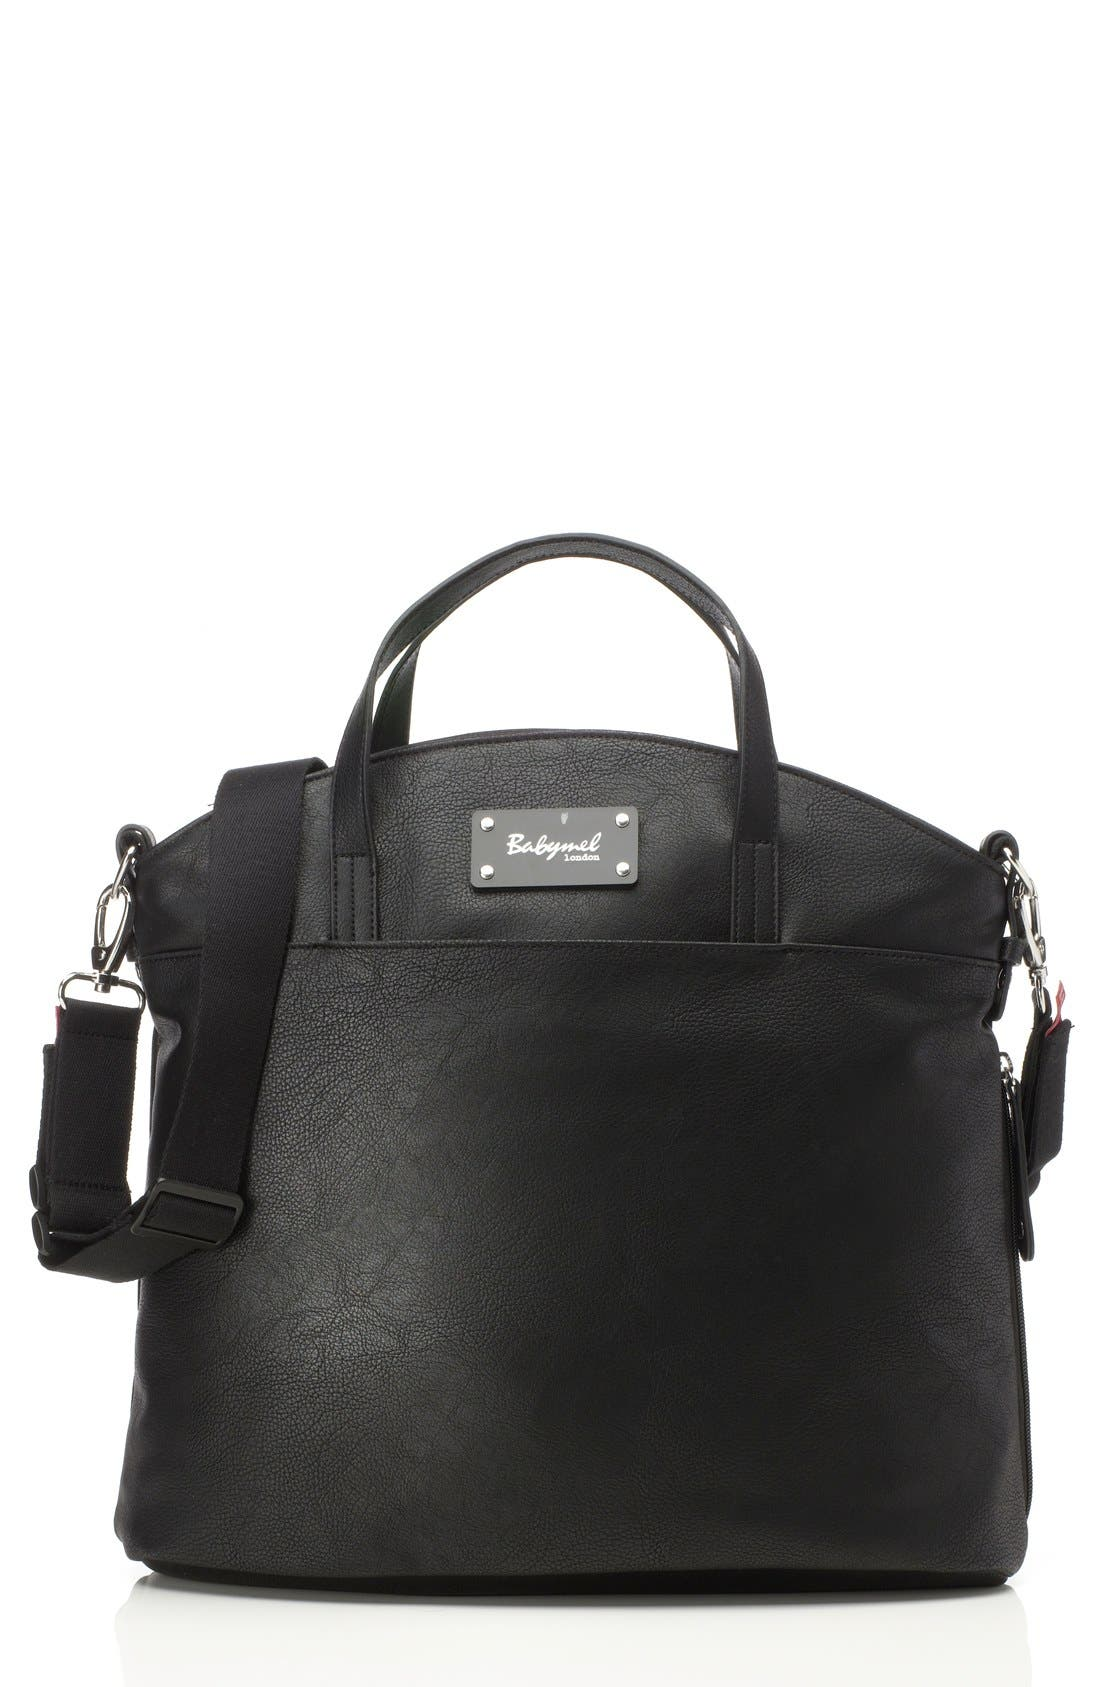 'Grace' Diaper Bag,                             Main thumbnail 1, color,                             BLACK